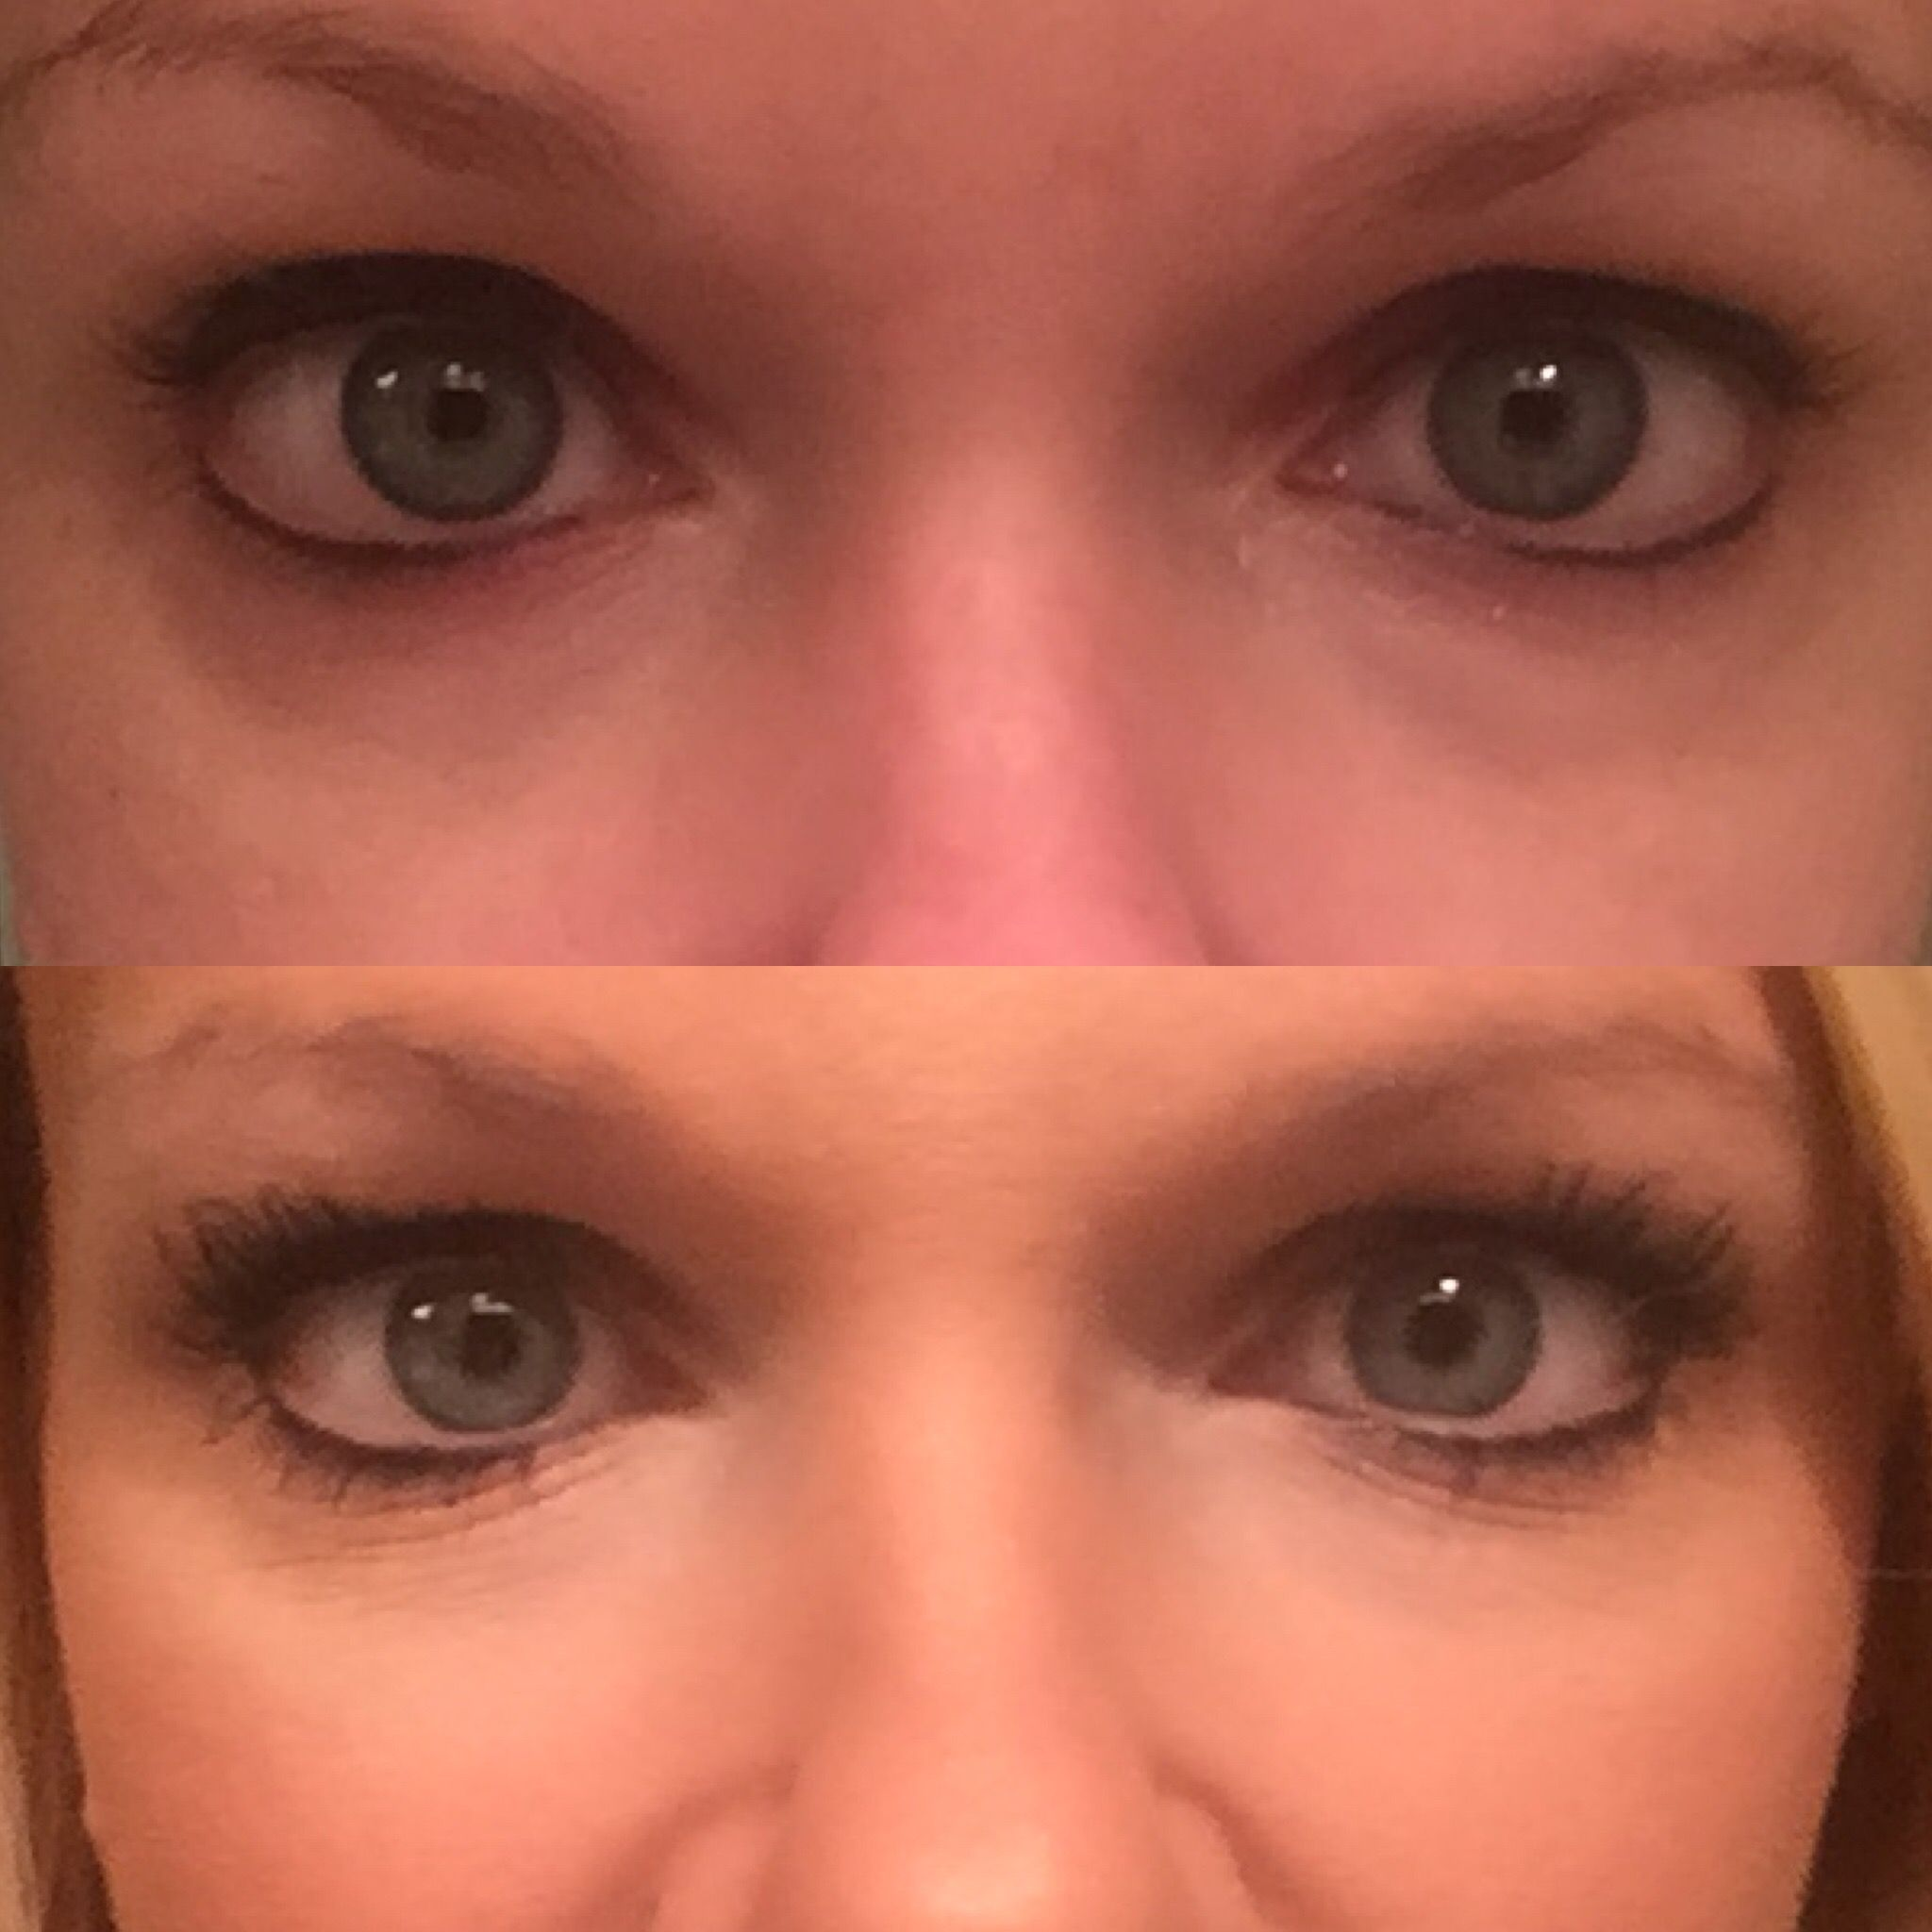 Before And After With Senegence Eye Illuminator And Candlelight